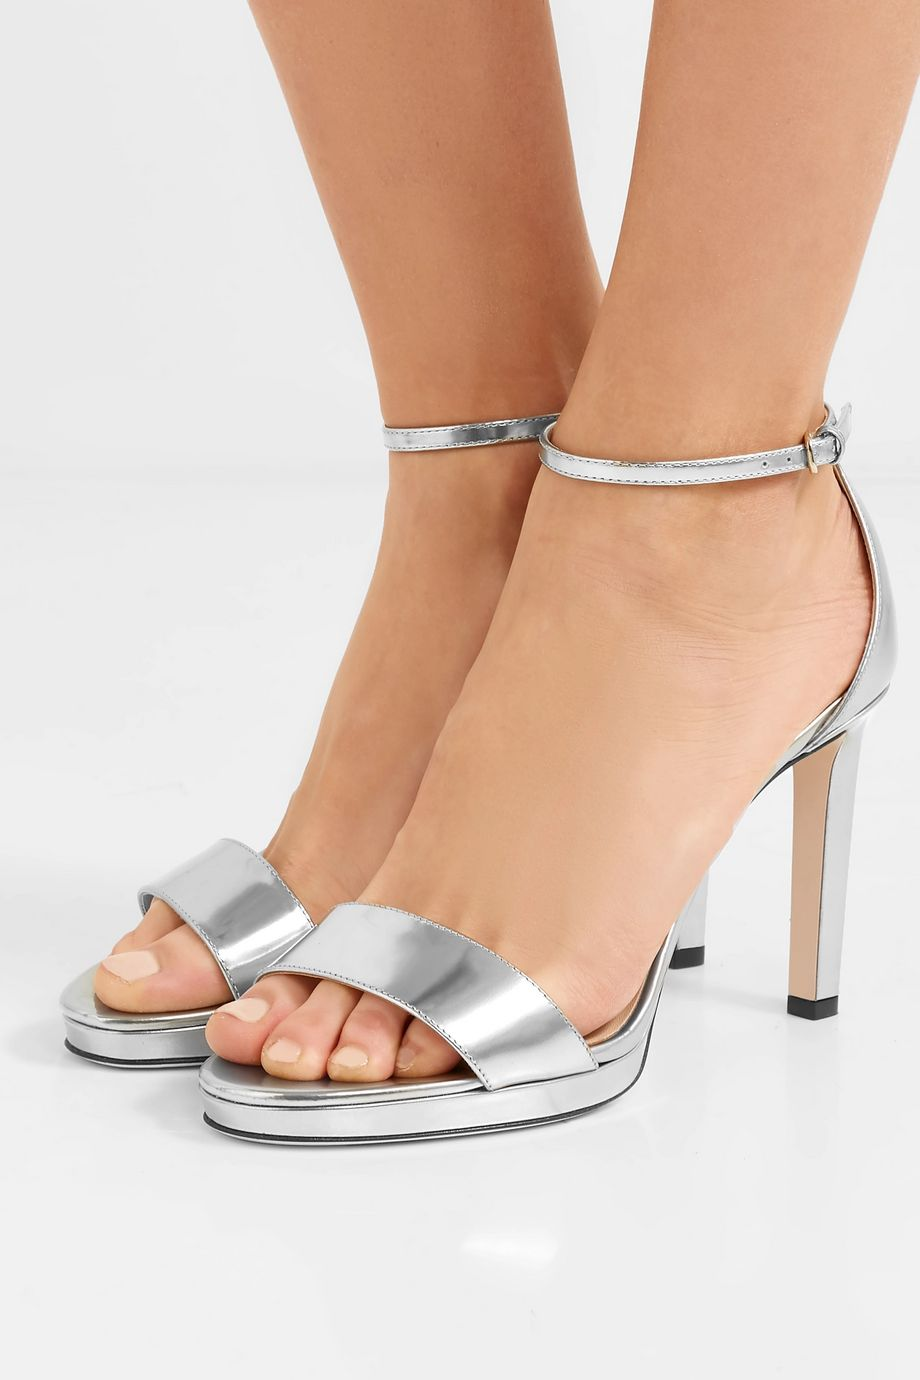 Jimmy Choo Misty 100 metallic leather platform sandals